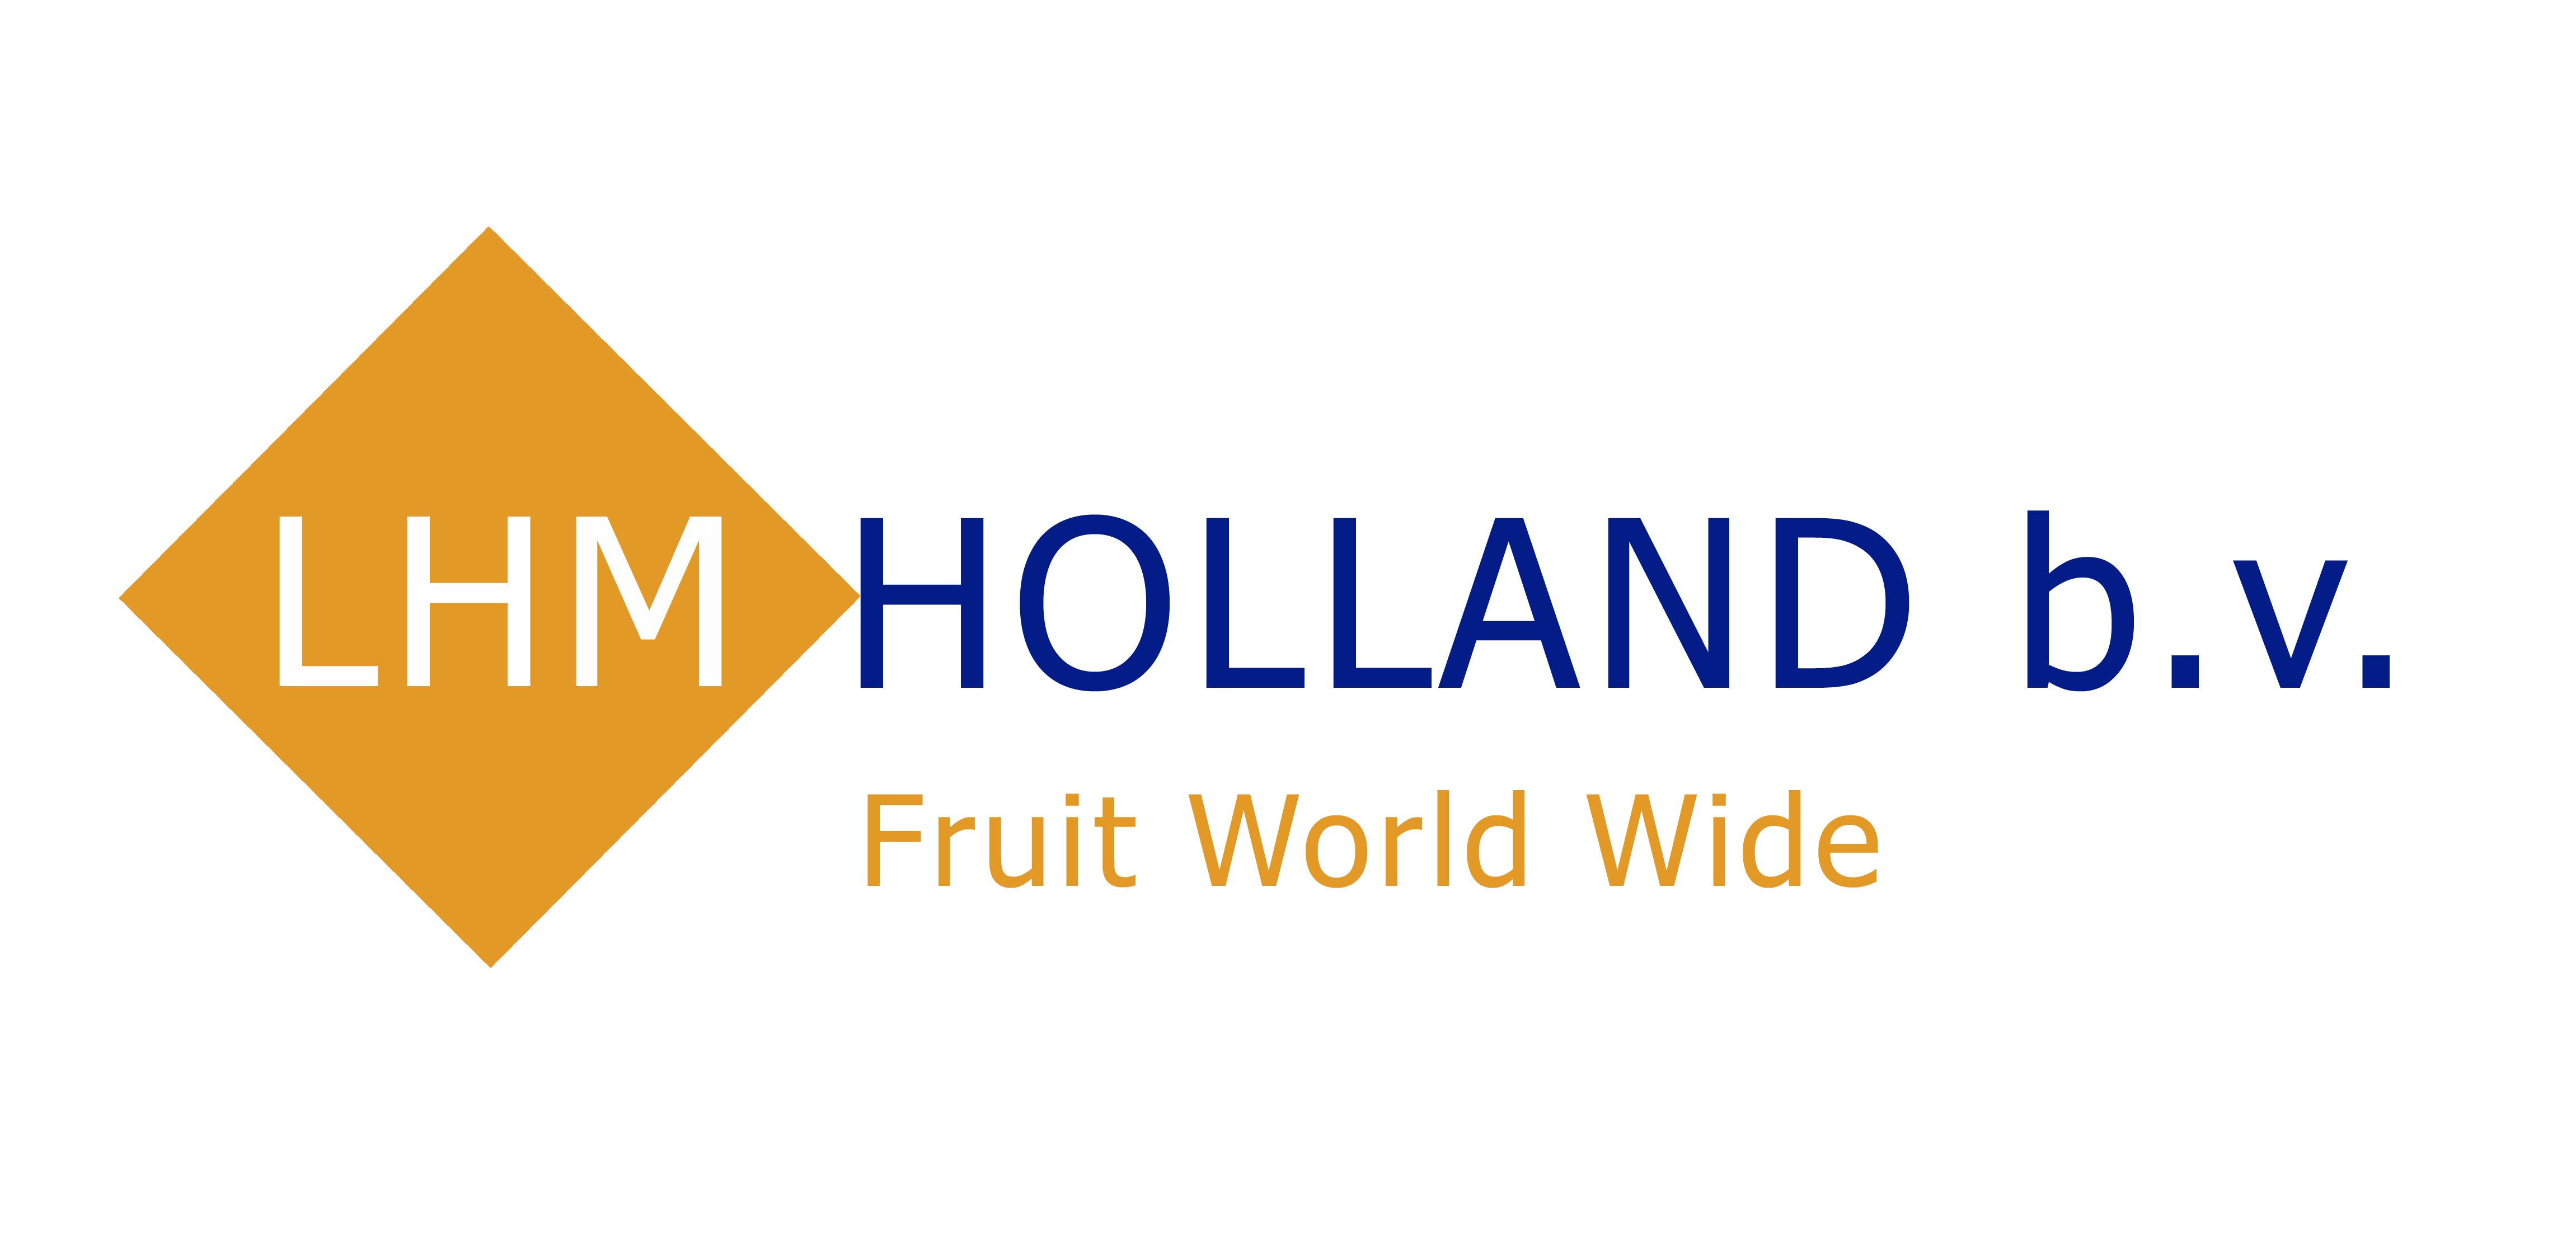 LHM Holland